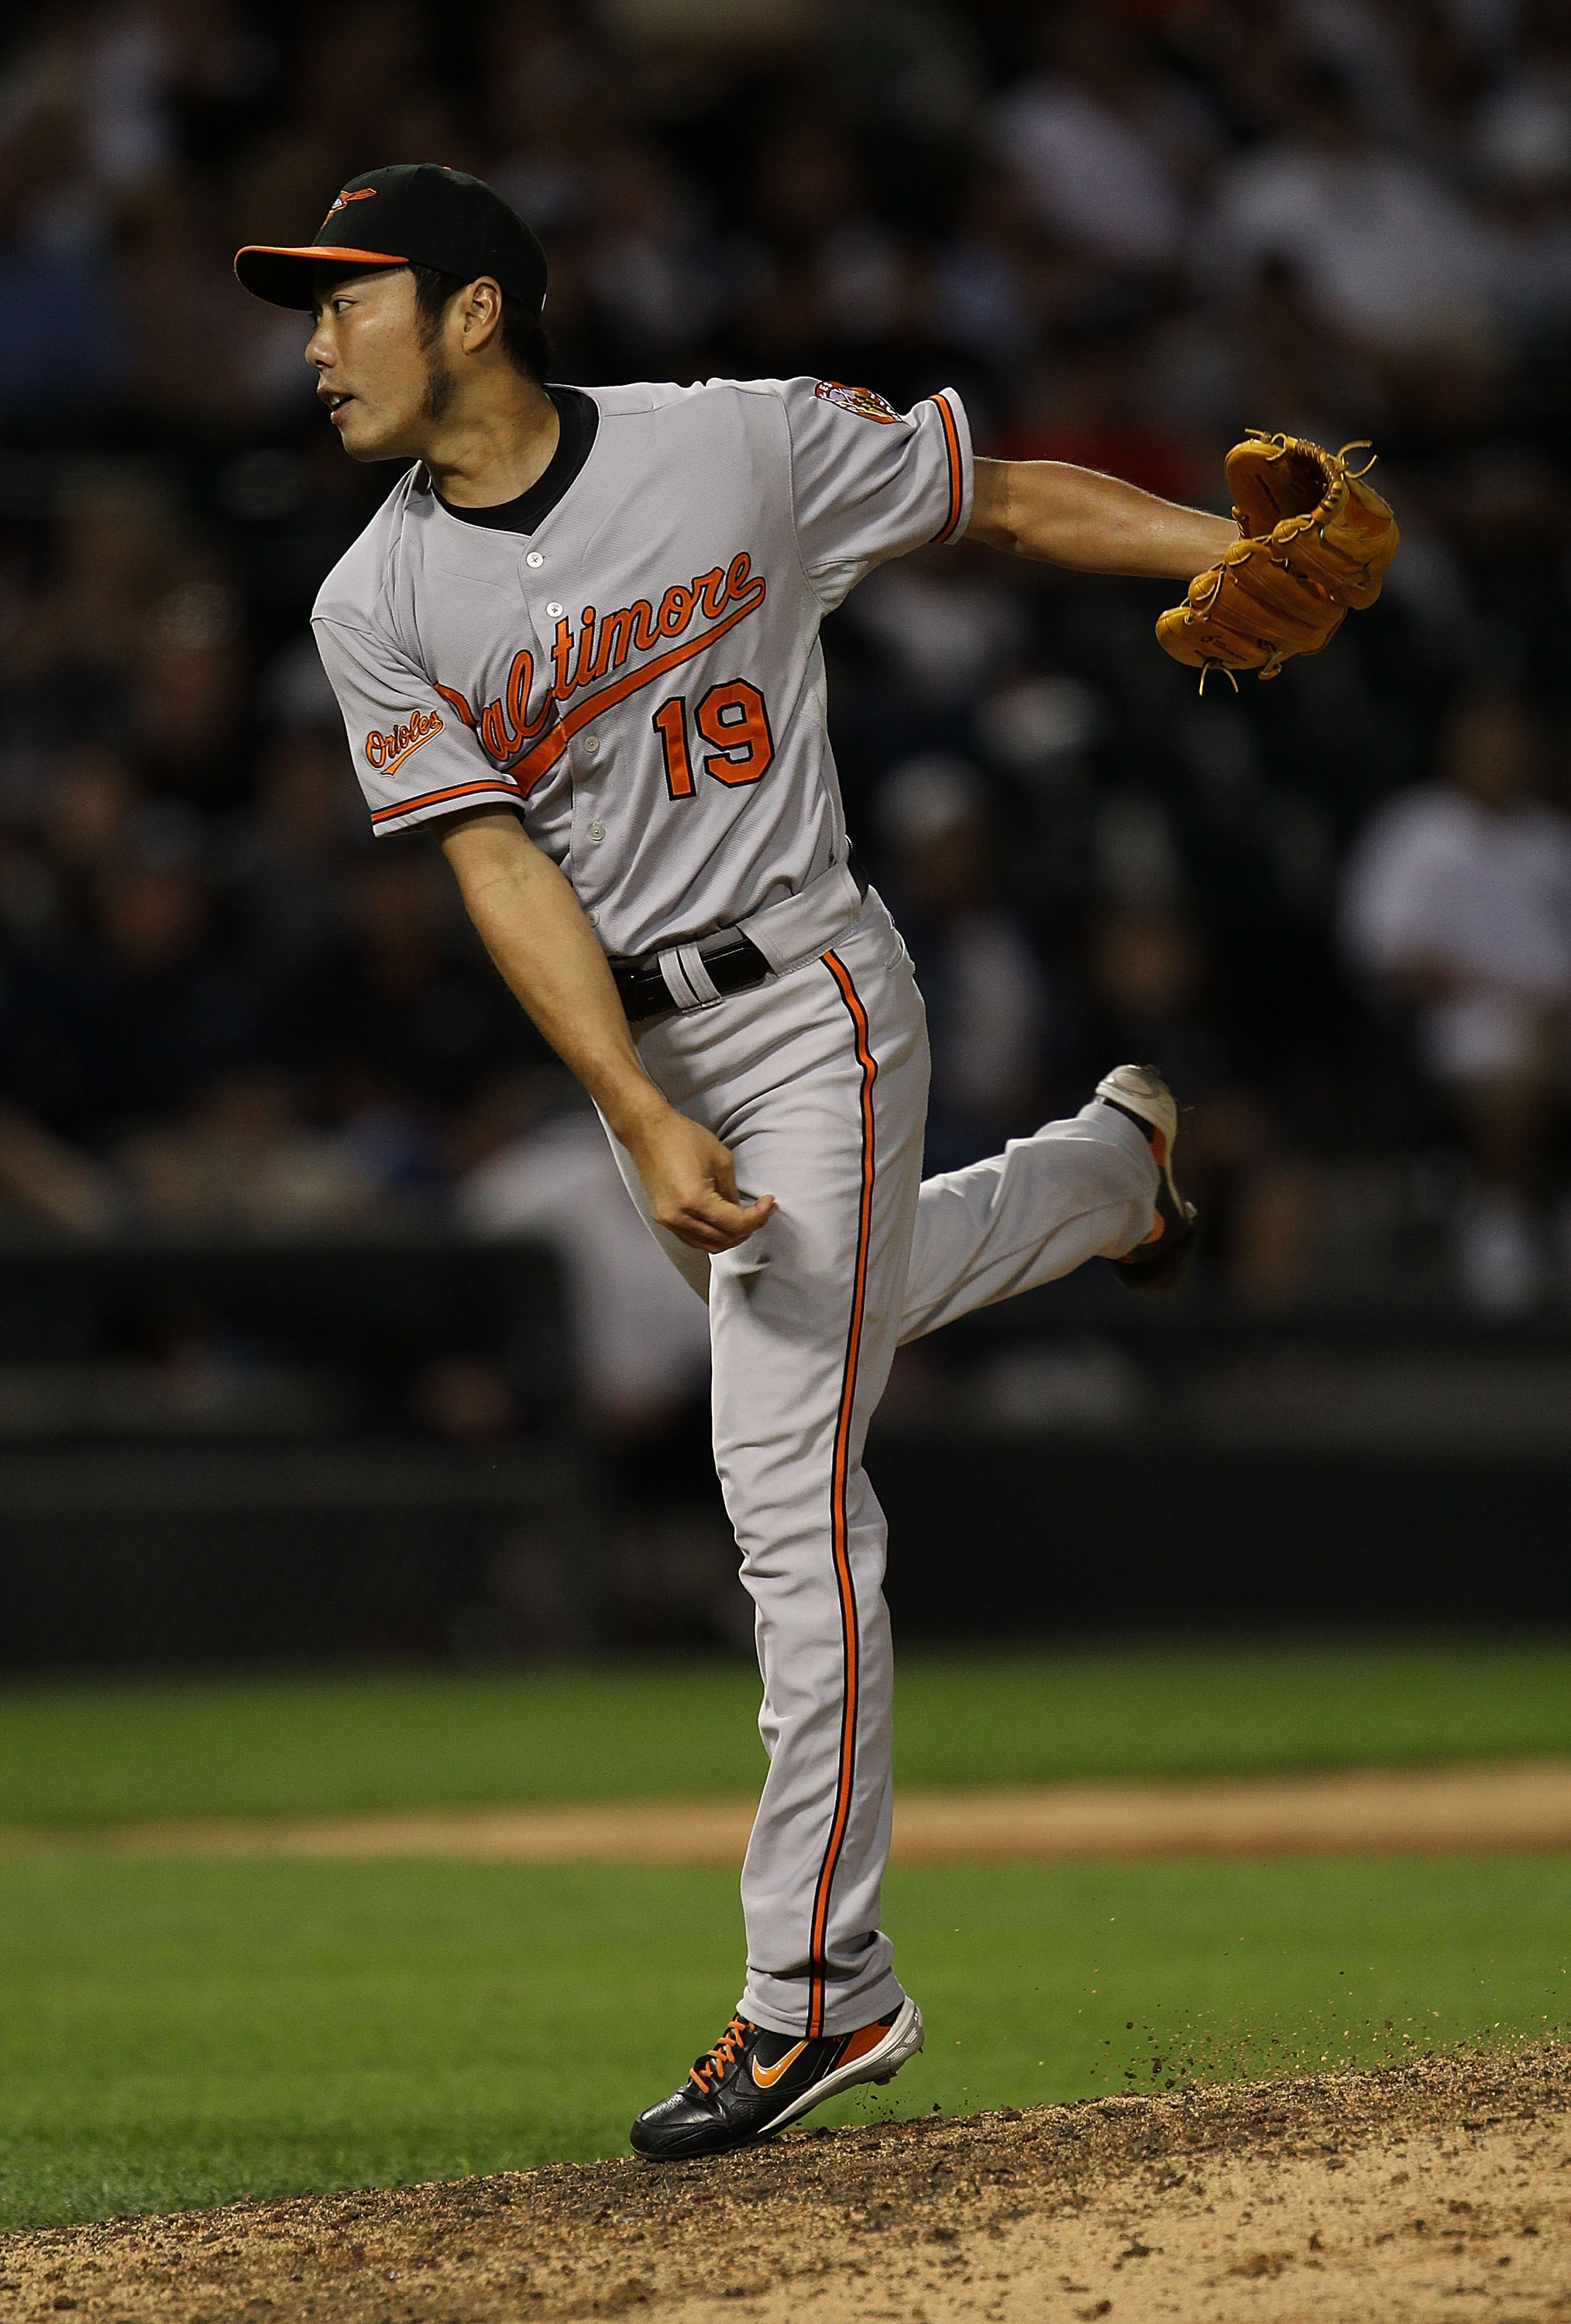 CHICAGO - AUGUST 25: Koji Uehara #19 of the Baltimore Orioles follows through after pitching in the 9th inning against the Chicago White Sox at U.S. Cellular Field on August 25, 2010 in Chicago, Illinois. The Orioles defeated the White Sox 4-3. (Photo by